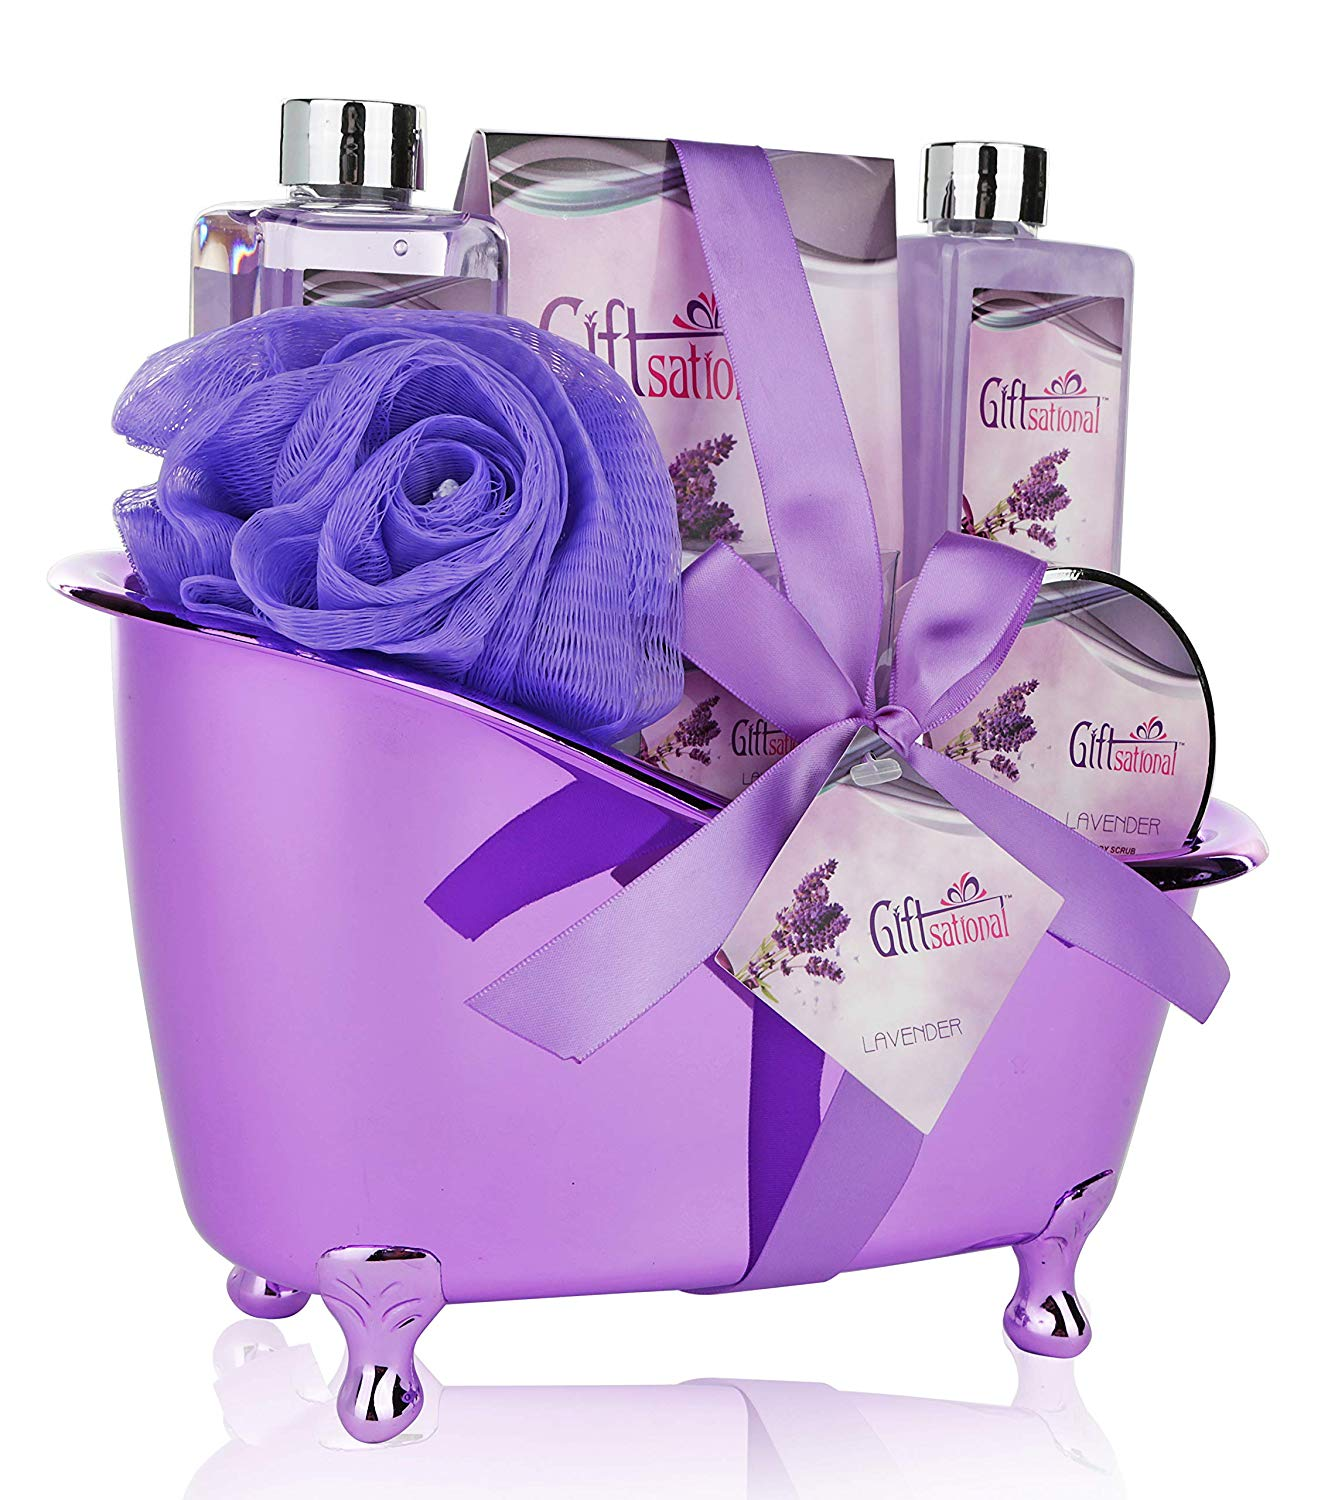 Spa Gift Basket Lavender Fragrance Cute Tub-Shaped Holder With Bath Accessories